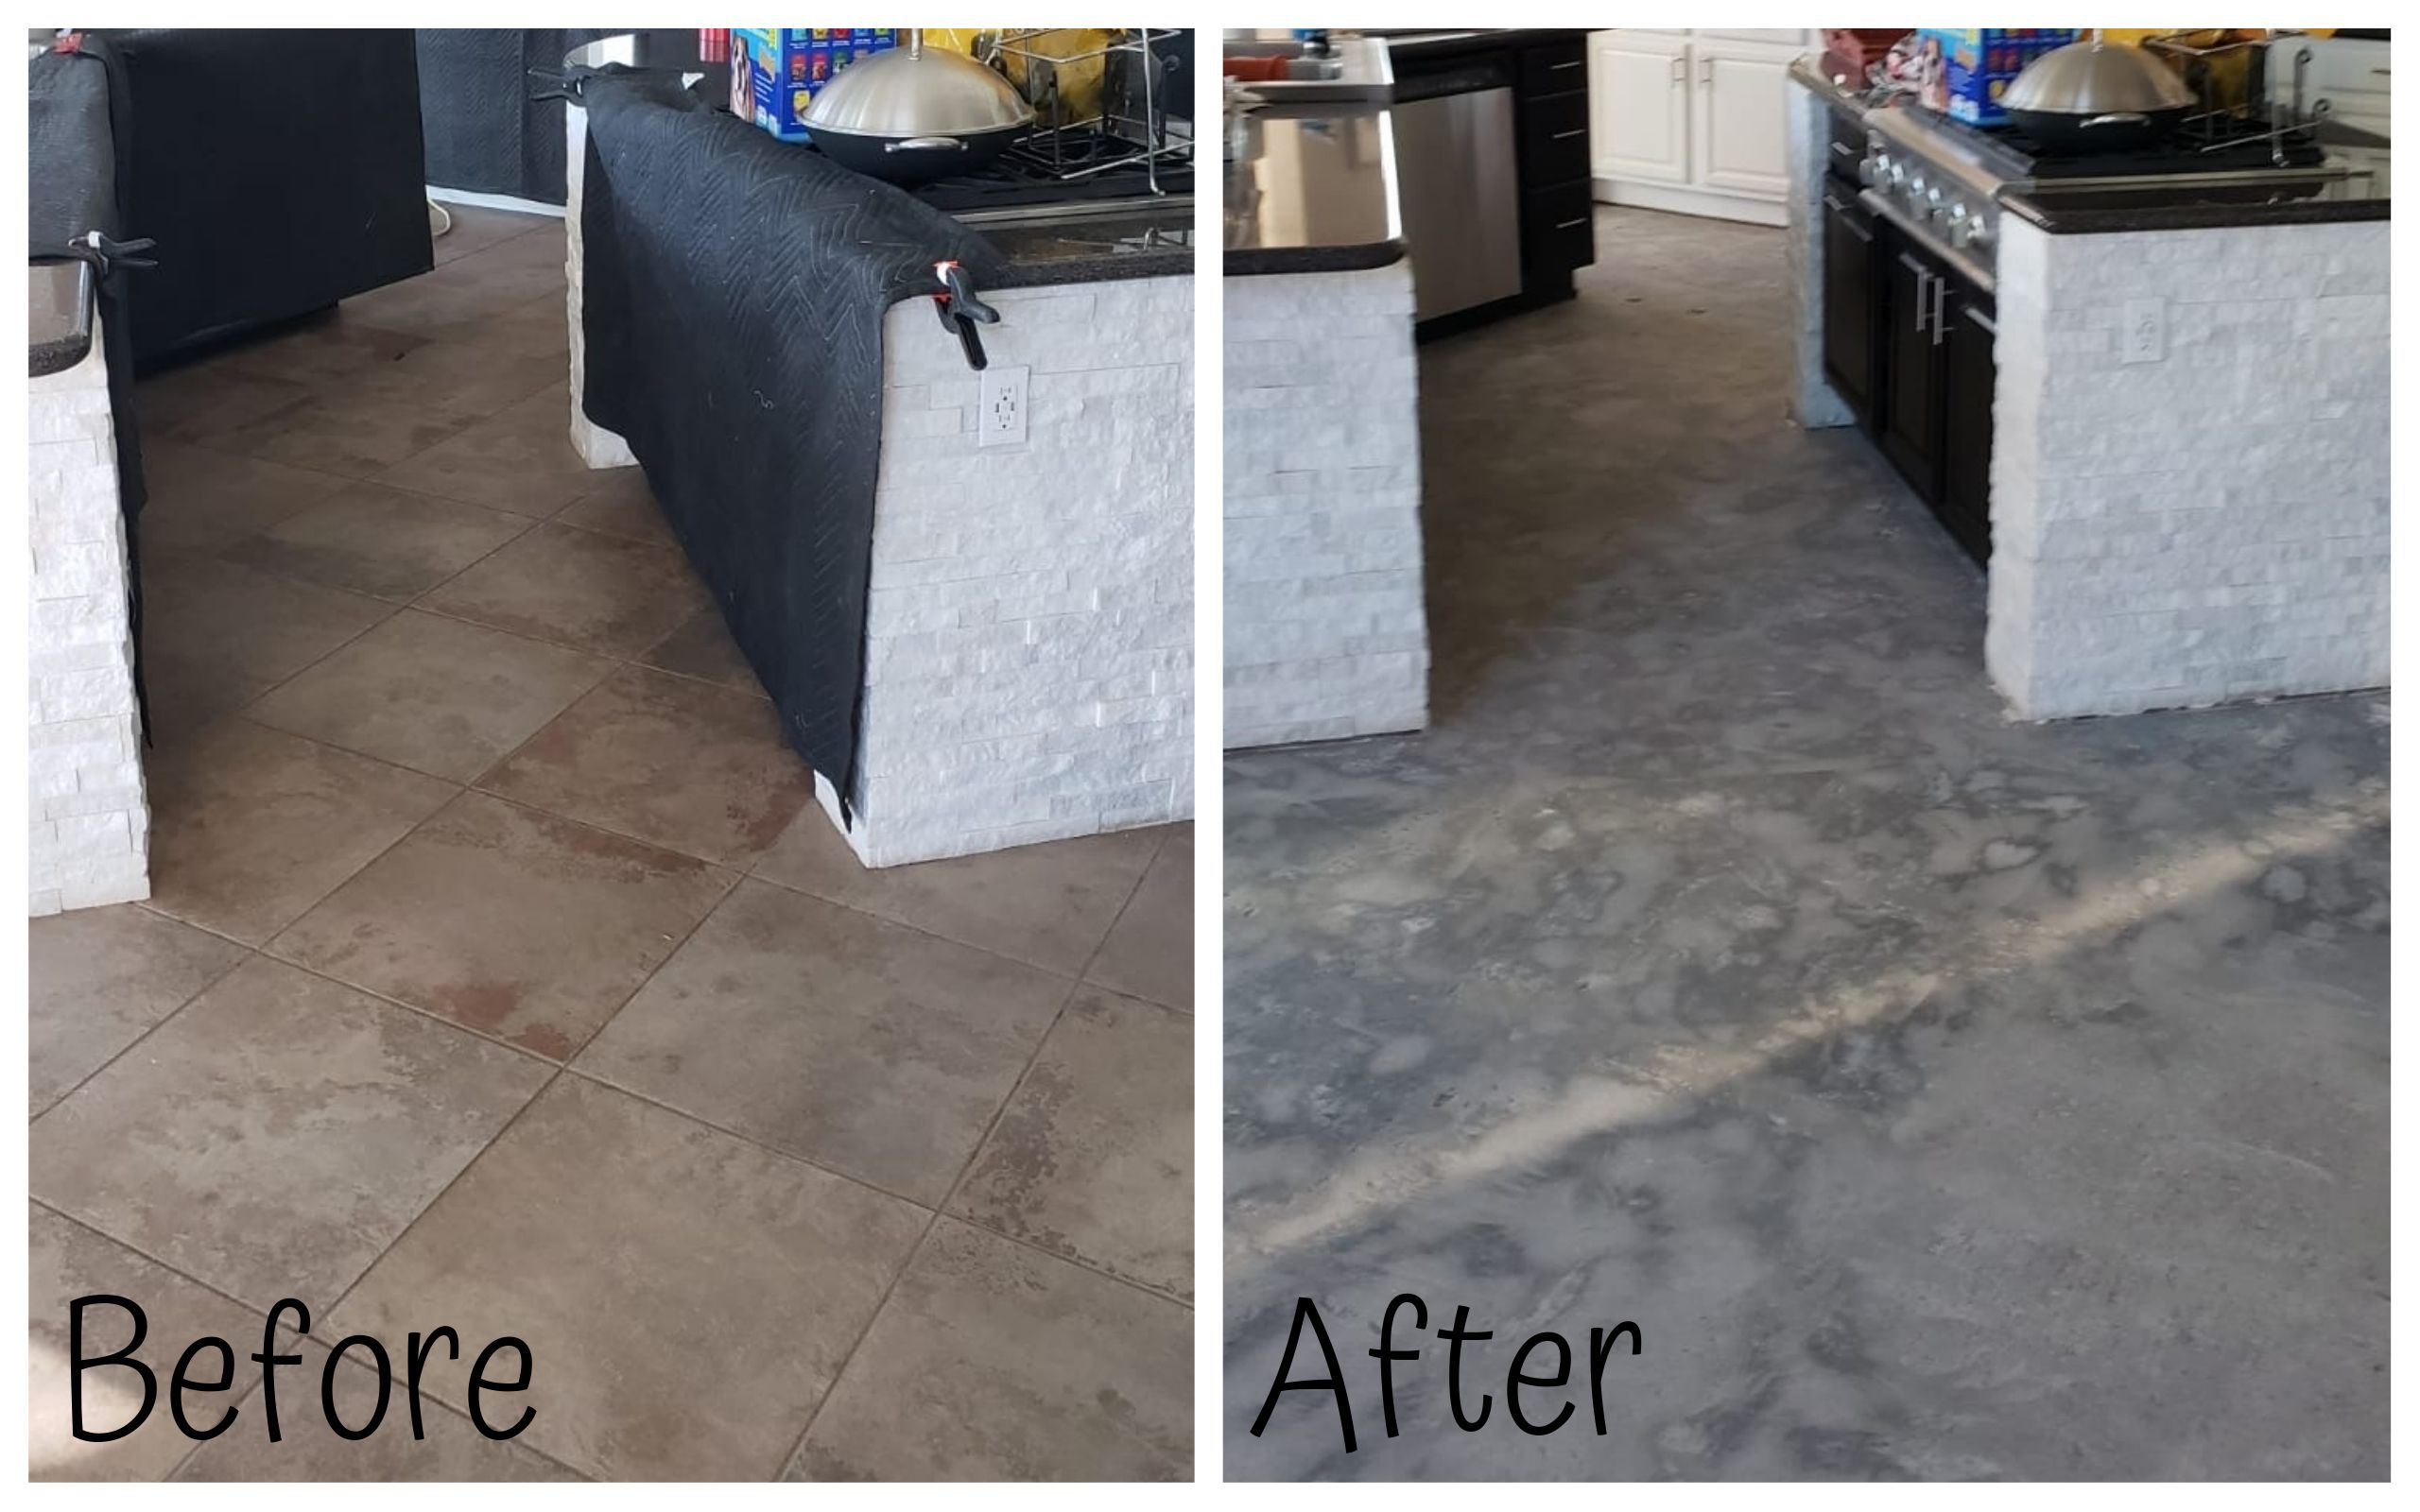 Say Goodbye To The Old Dusty And Messy Way Of Removing Tile And Say Hello To Dustsharkz With Our Industrial Grade Hepa Vac In 2020 Tile Removal Hepa Vacuum Clean Tile